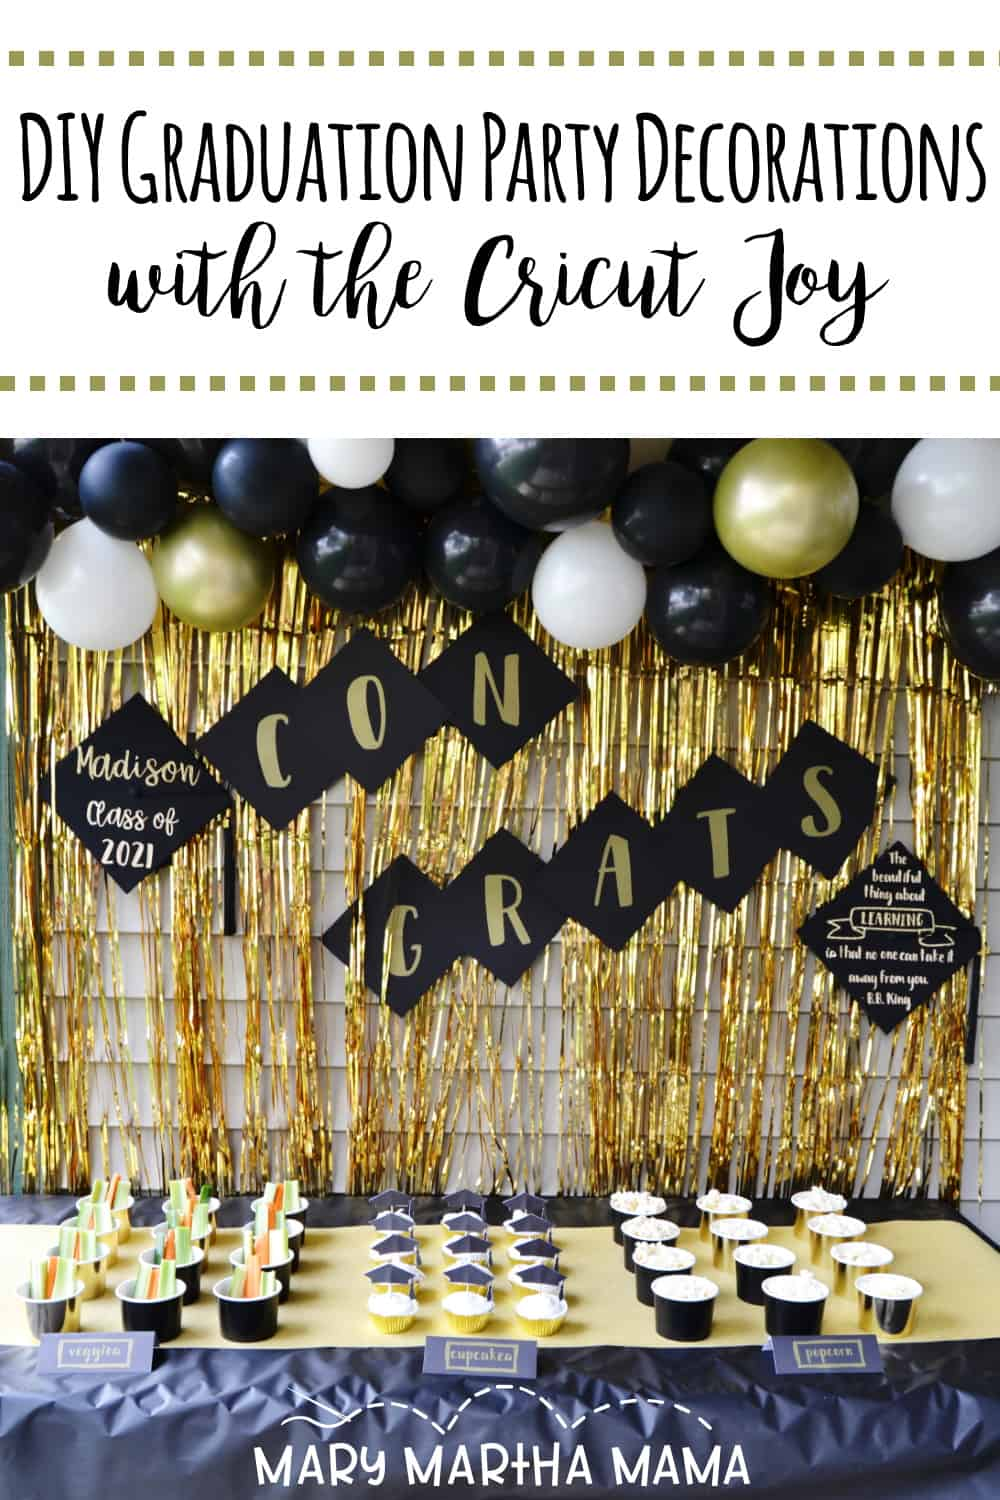 The Cricut Joy and Smart Materials make it so easy to make DIY graduation party decorations that are perfect for any graduation celebration.